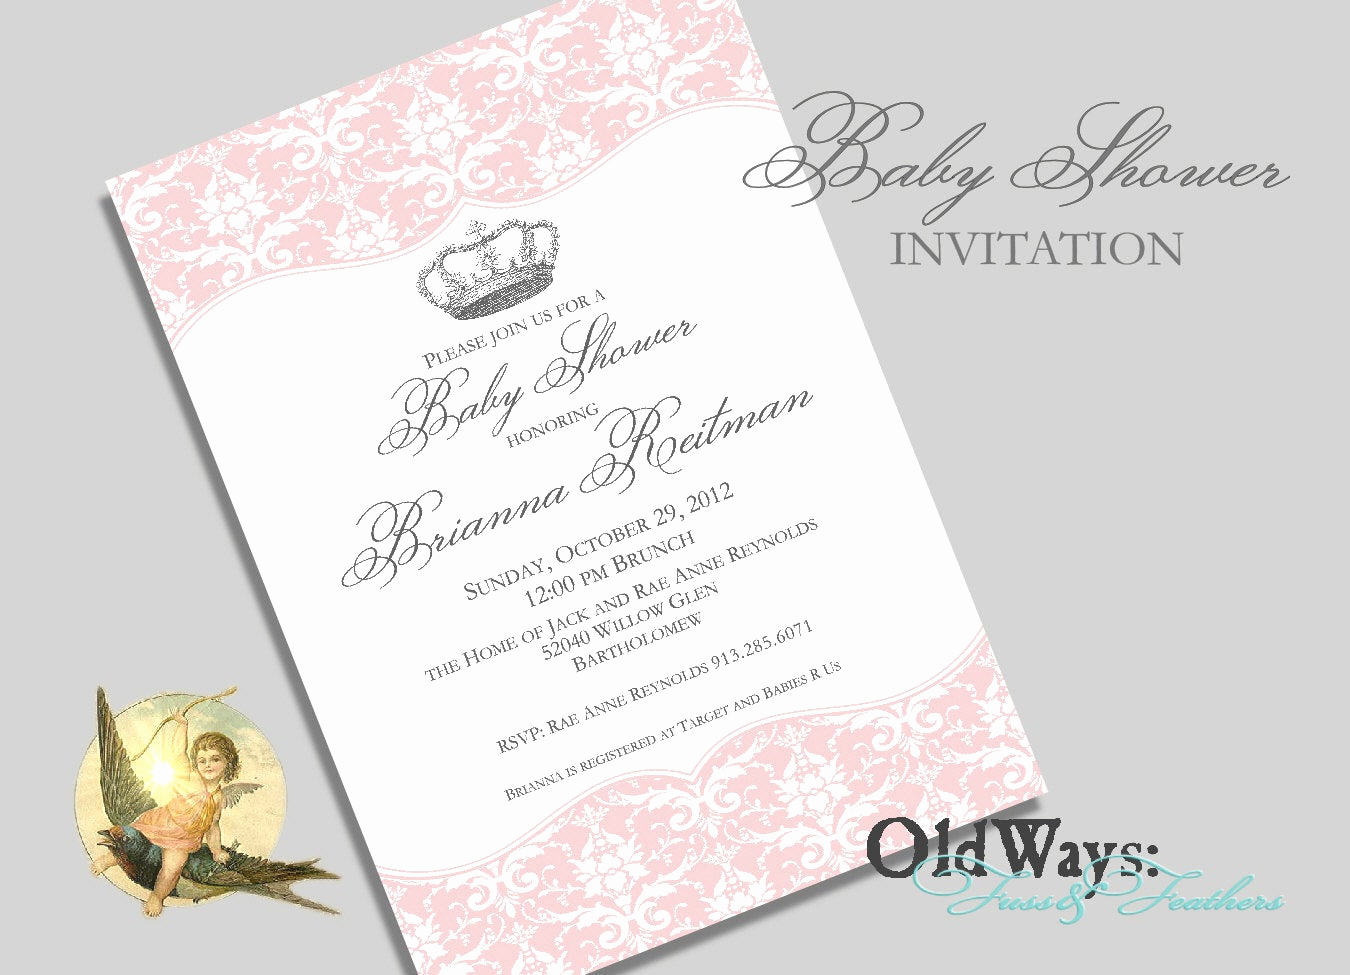 Princess Baby Shower Invitation Elegant Princess Baby Shower Invitation for A Girl by